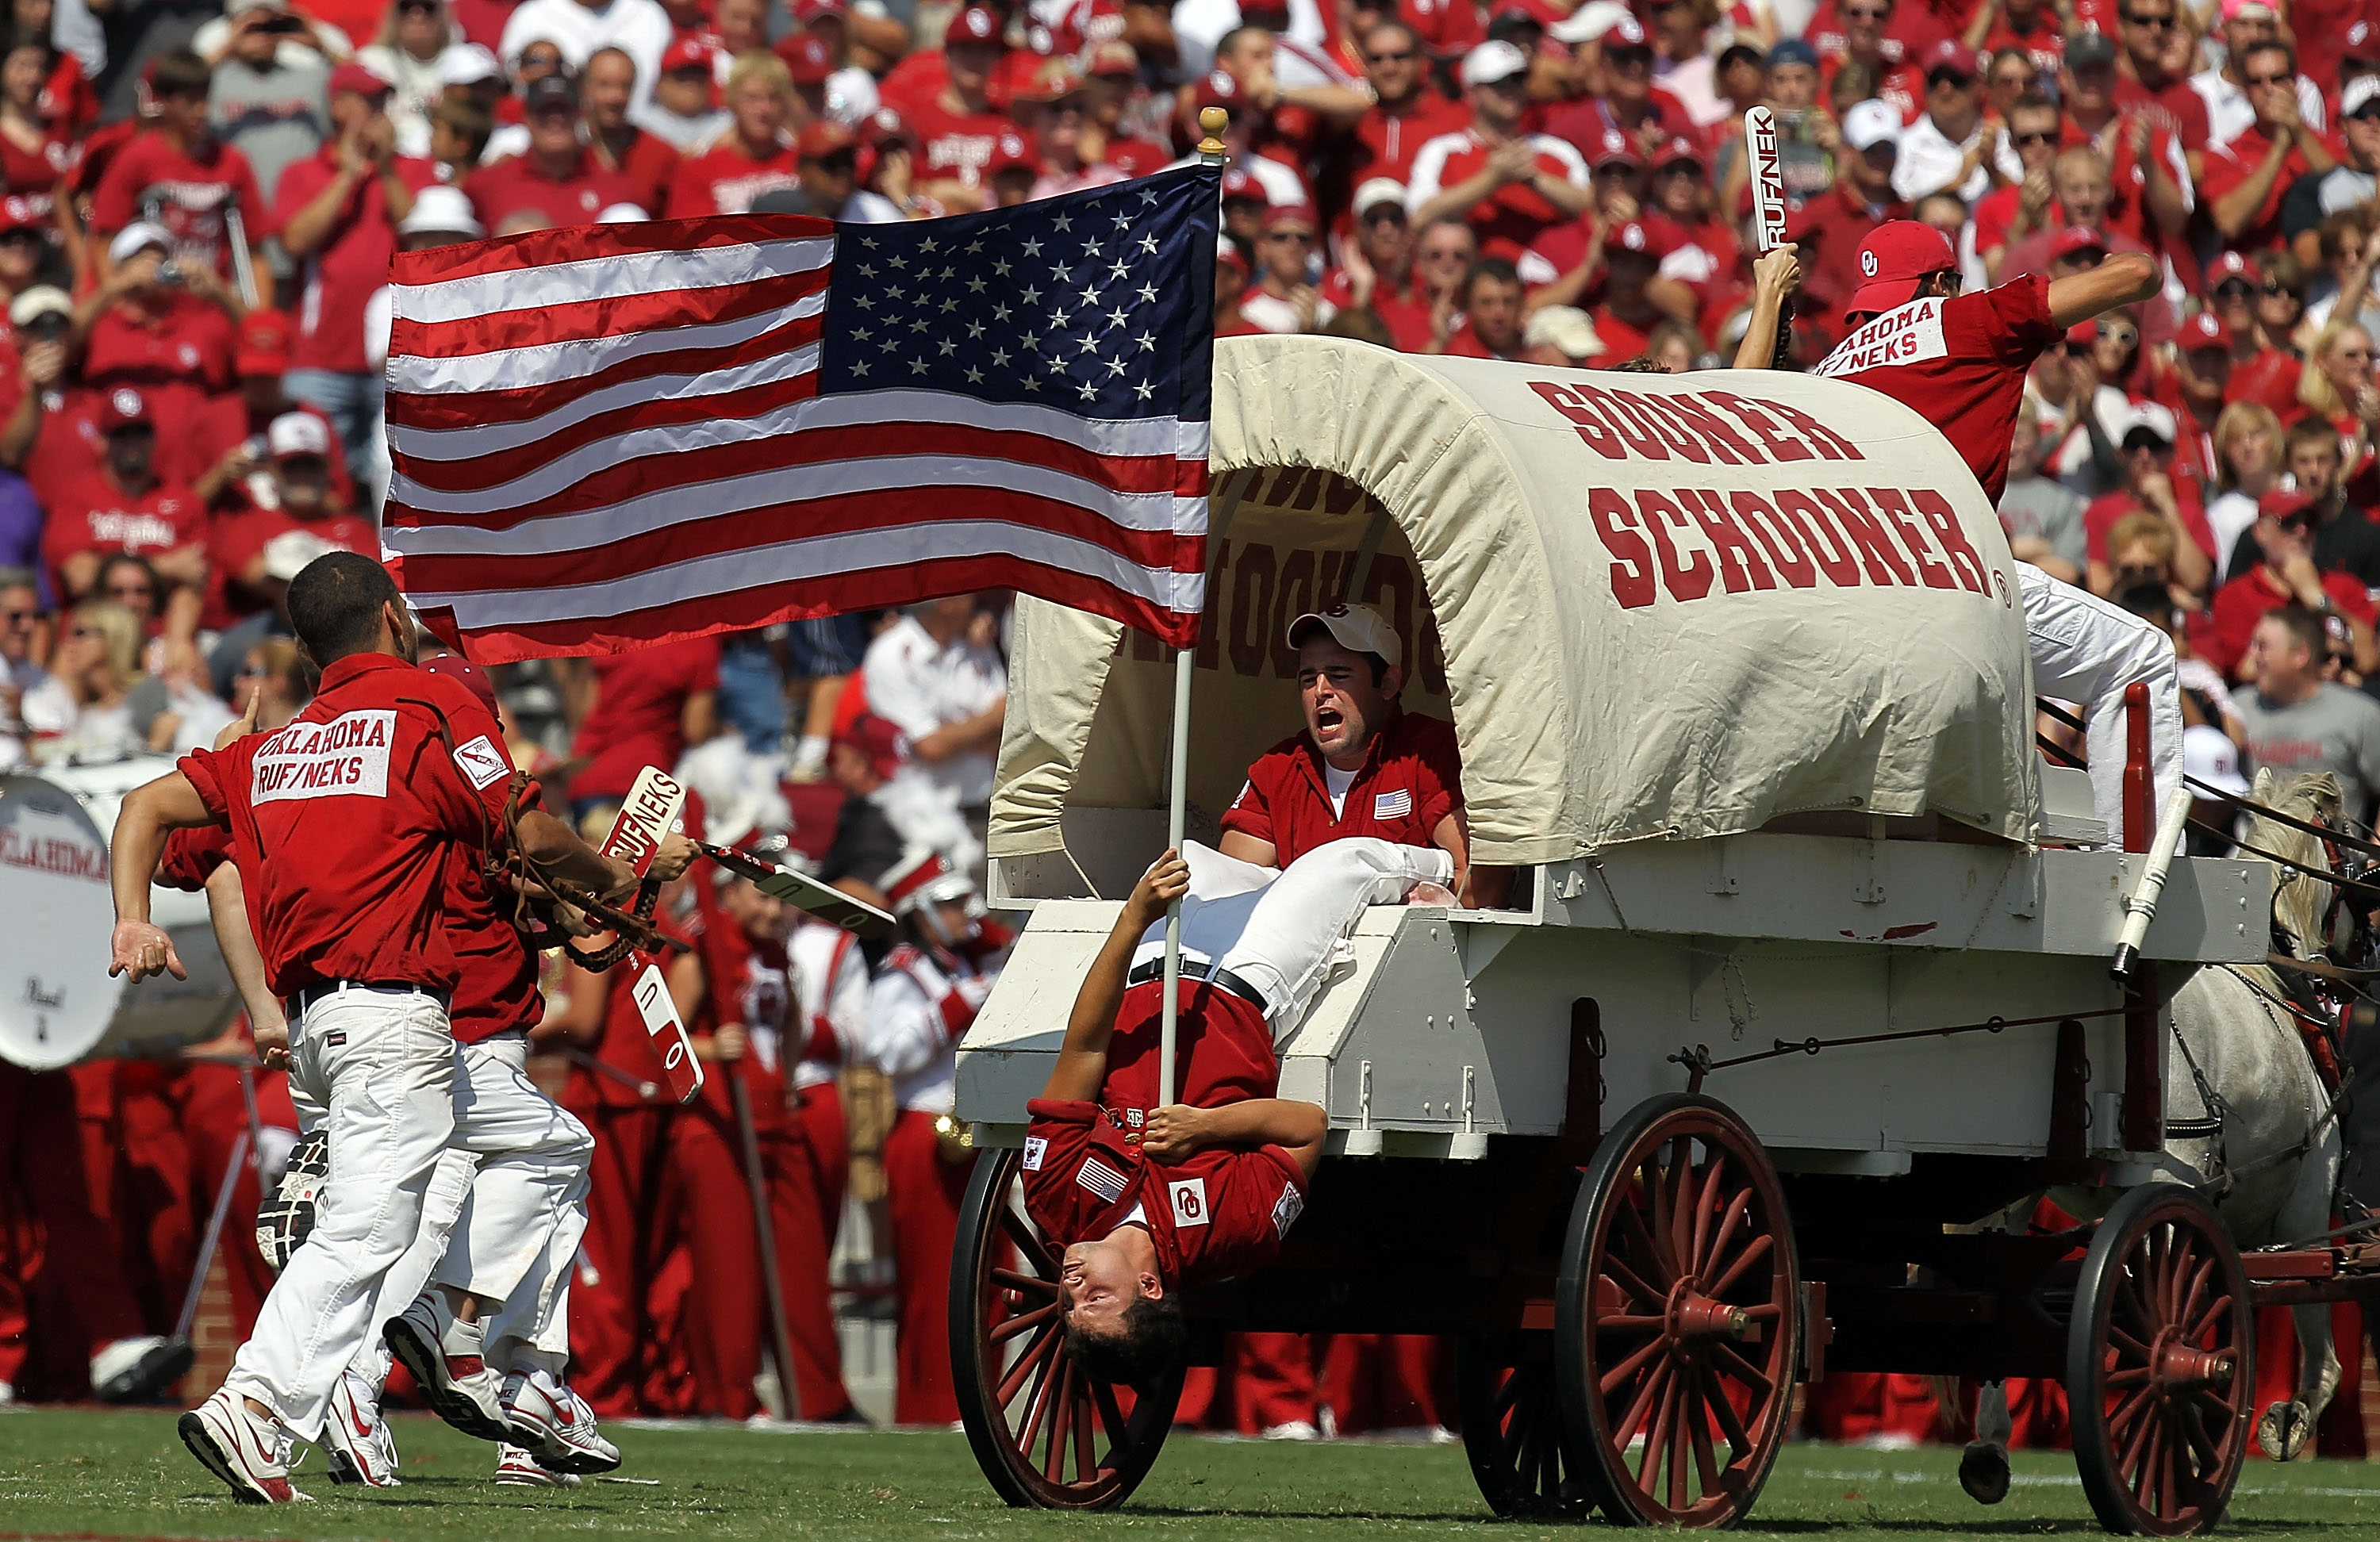 The Sooner Schooner chases Chief Osceola out of Norman